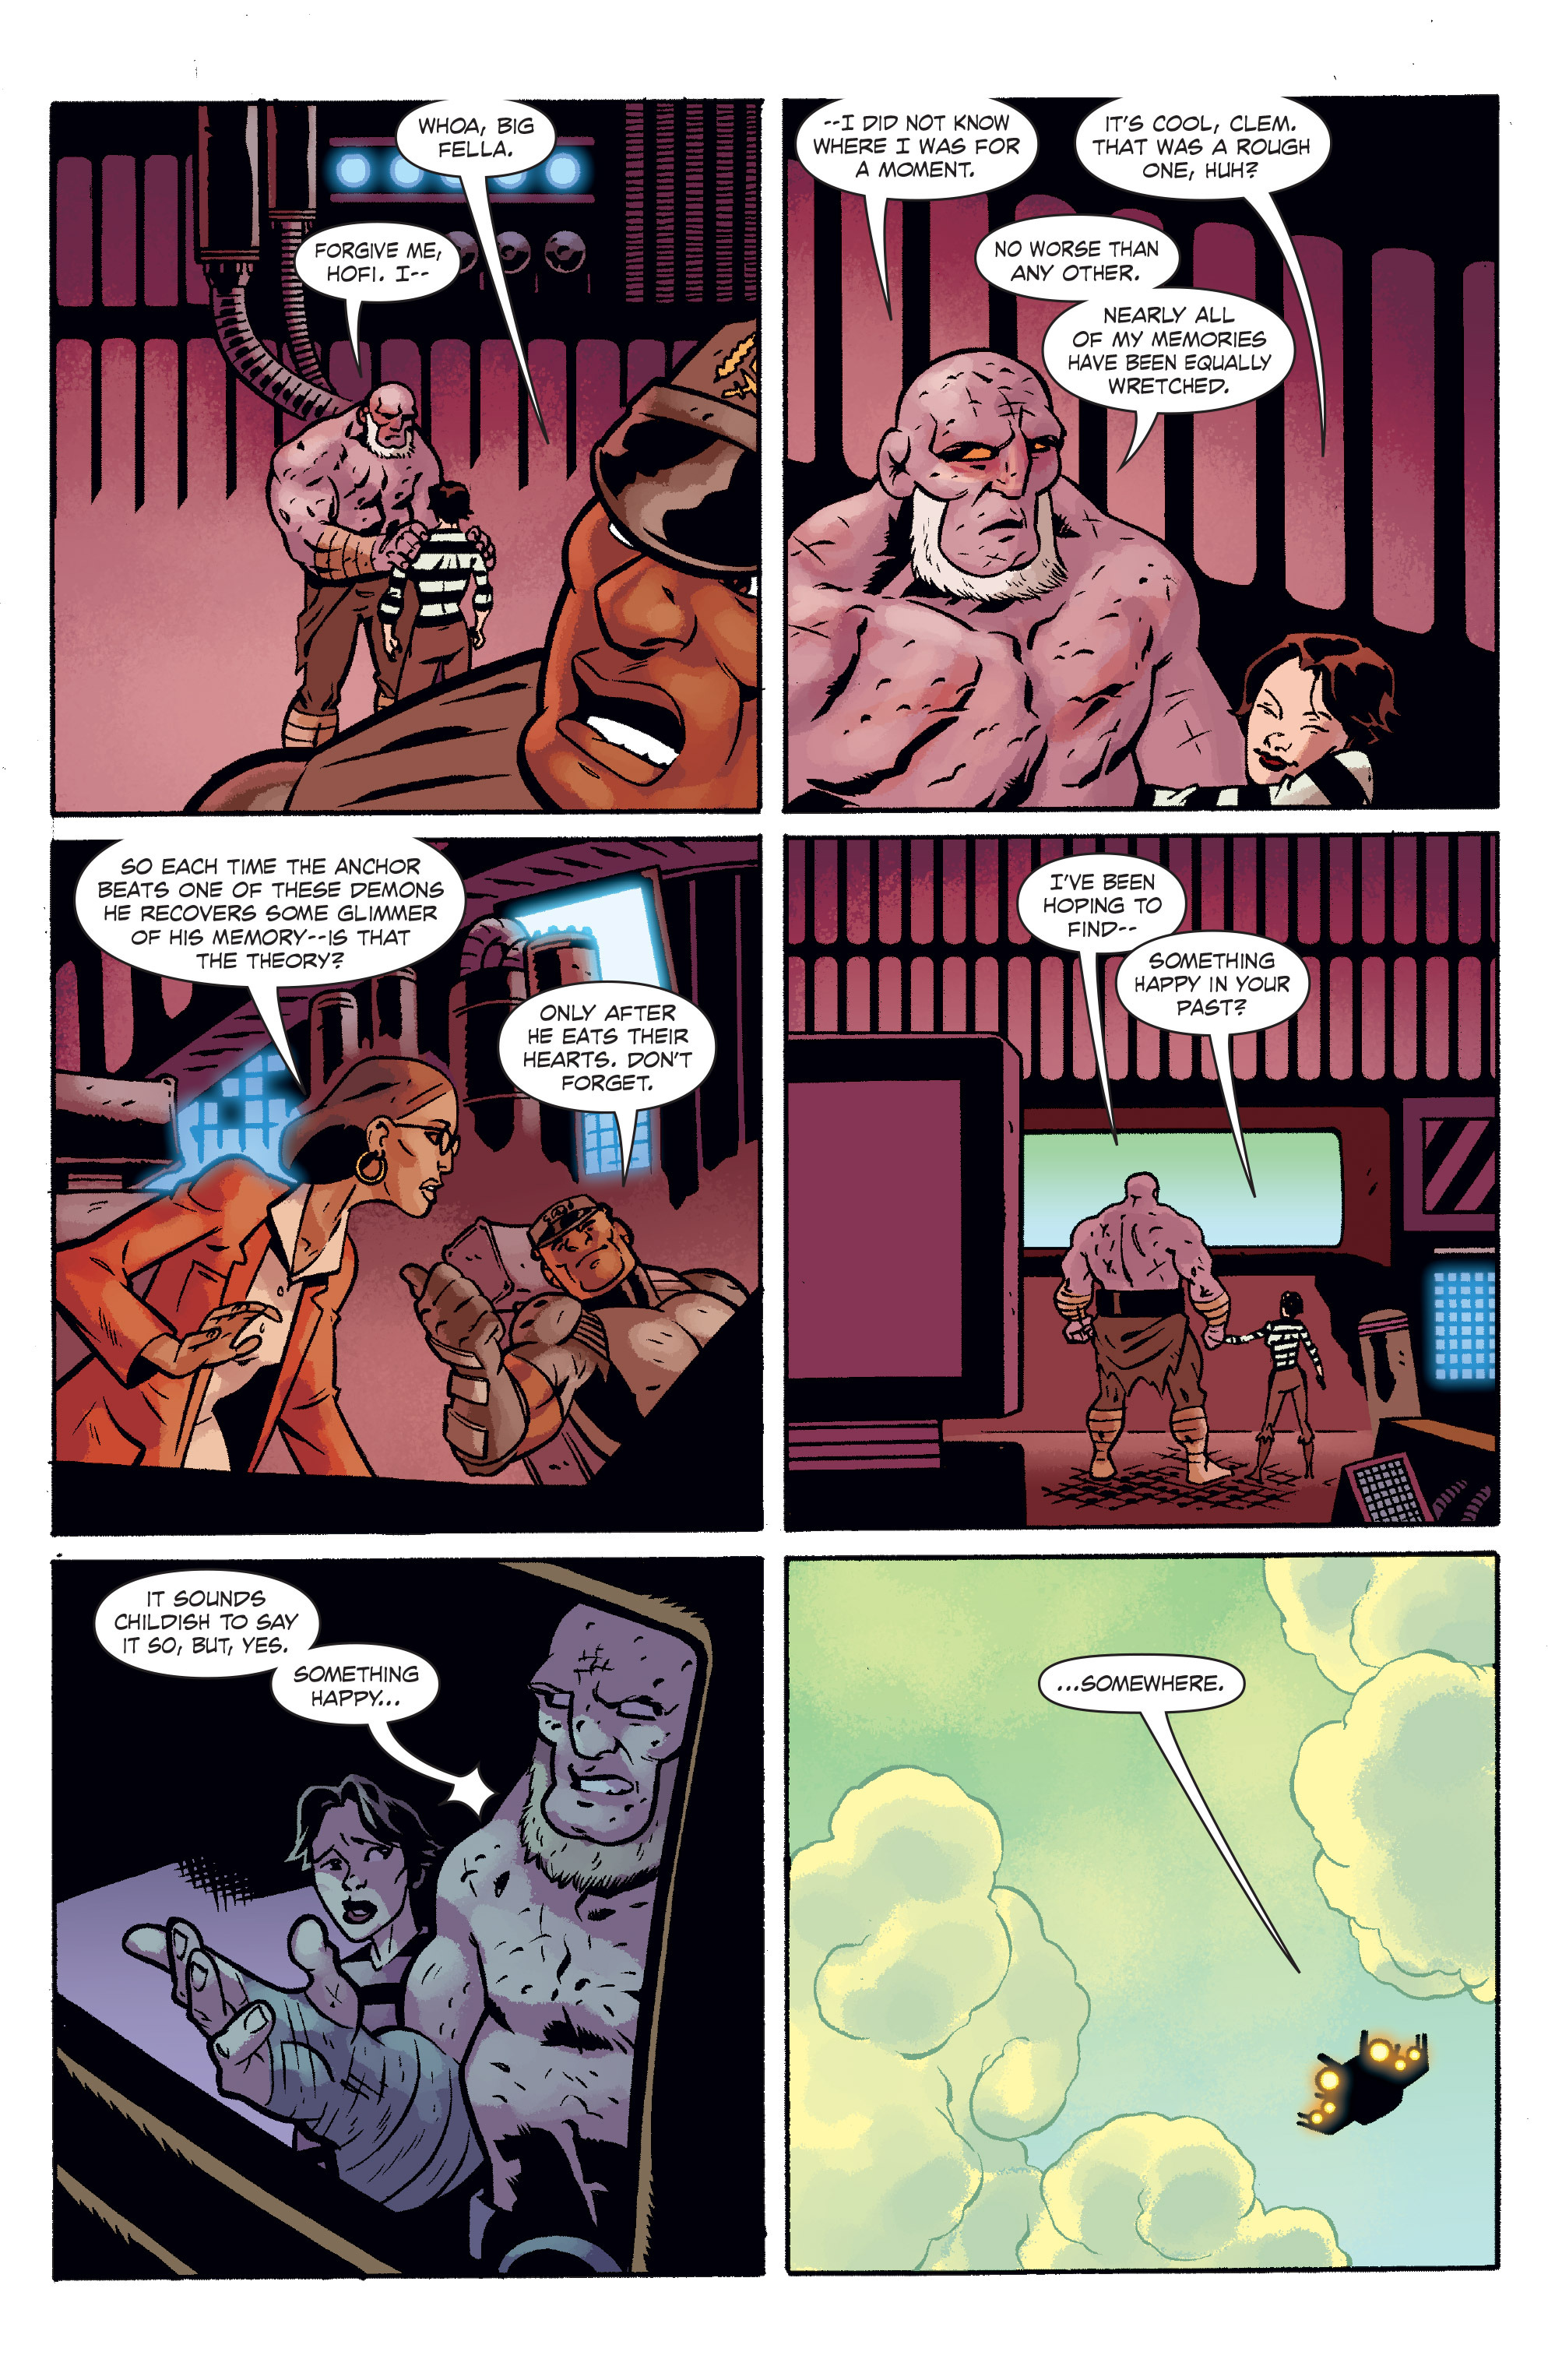 Read online The Anchor comic -  Issue # TPB 2 - 15